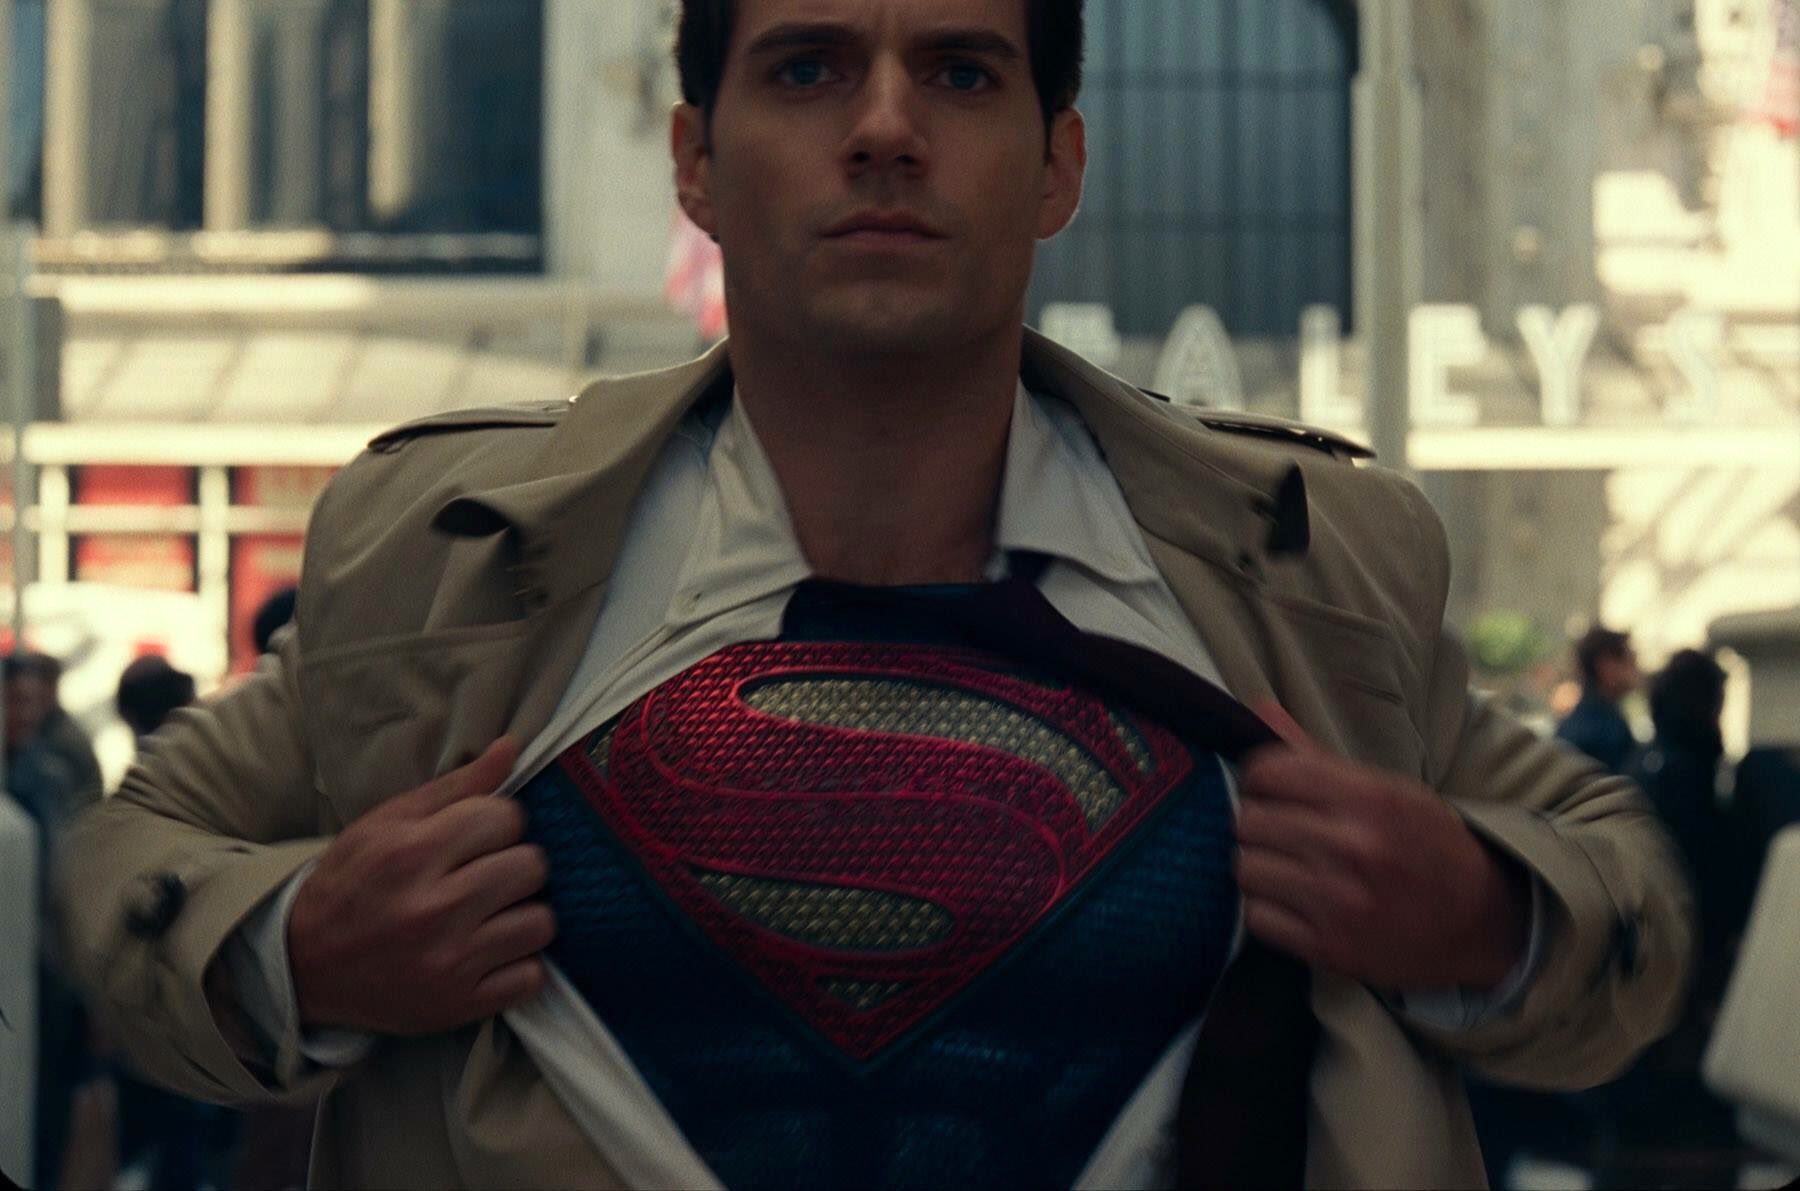 Henry Cavill mission impossible 6 reddit